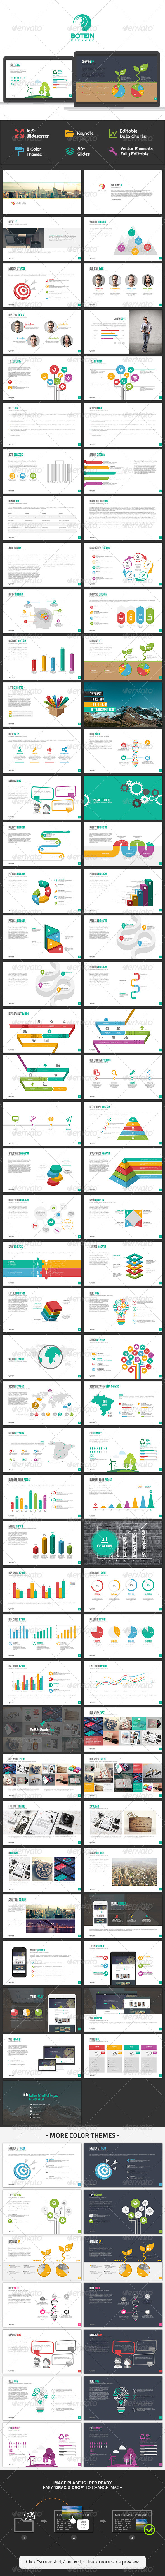 GraphicRiver Botein Keynote Template 8748361